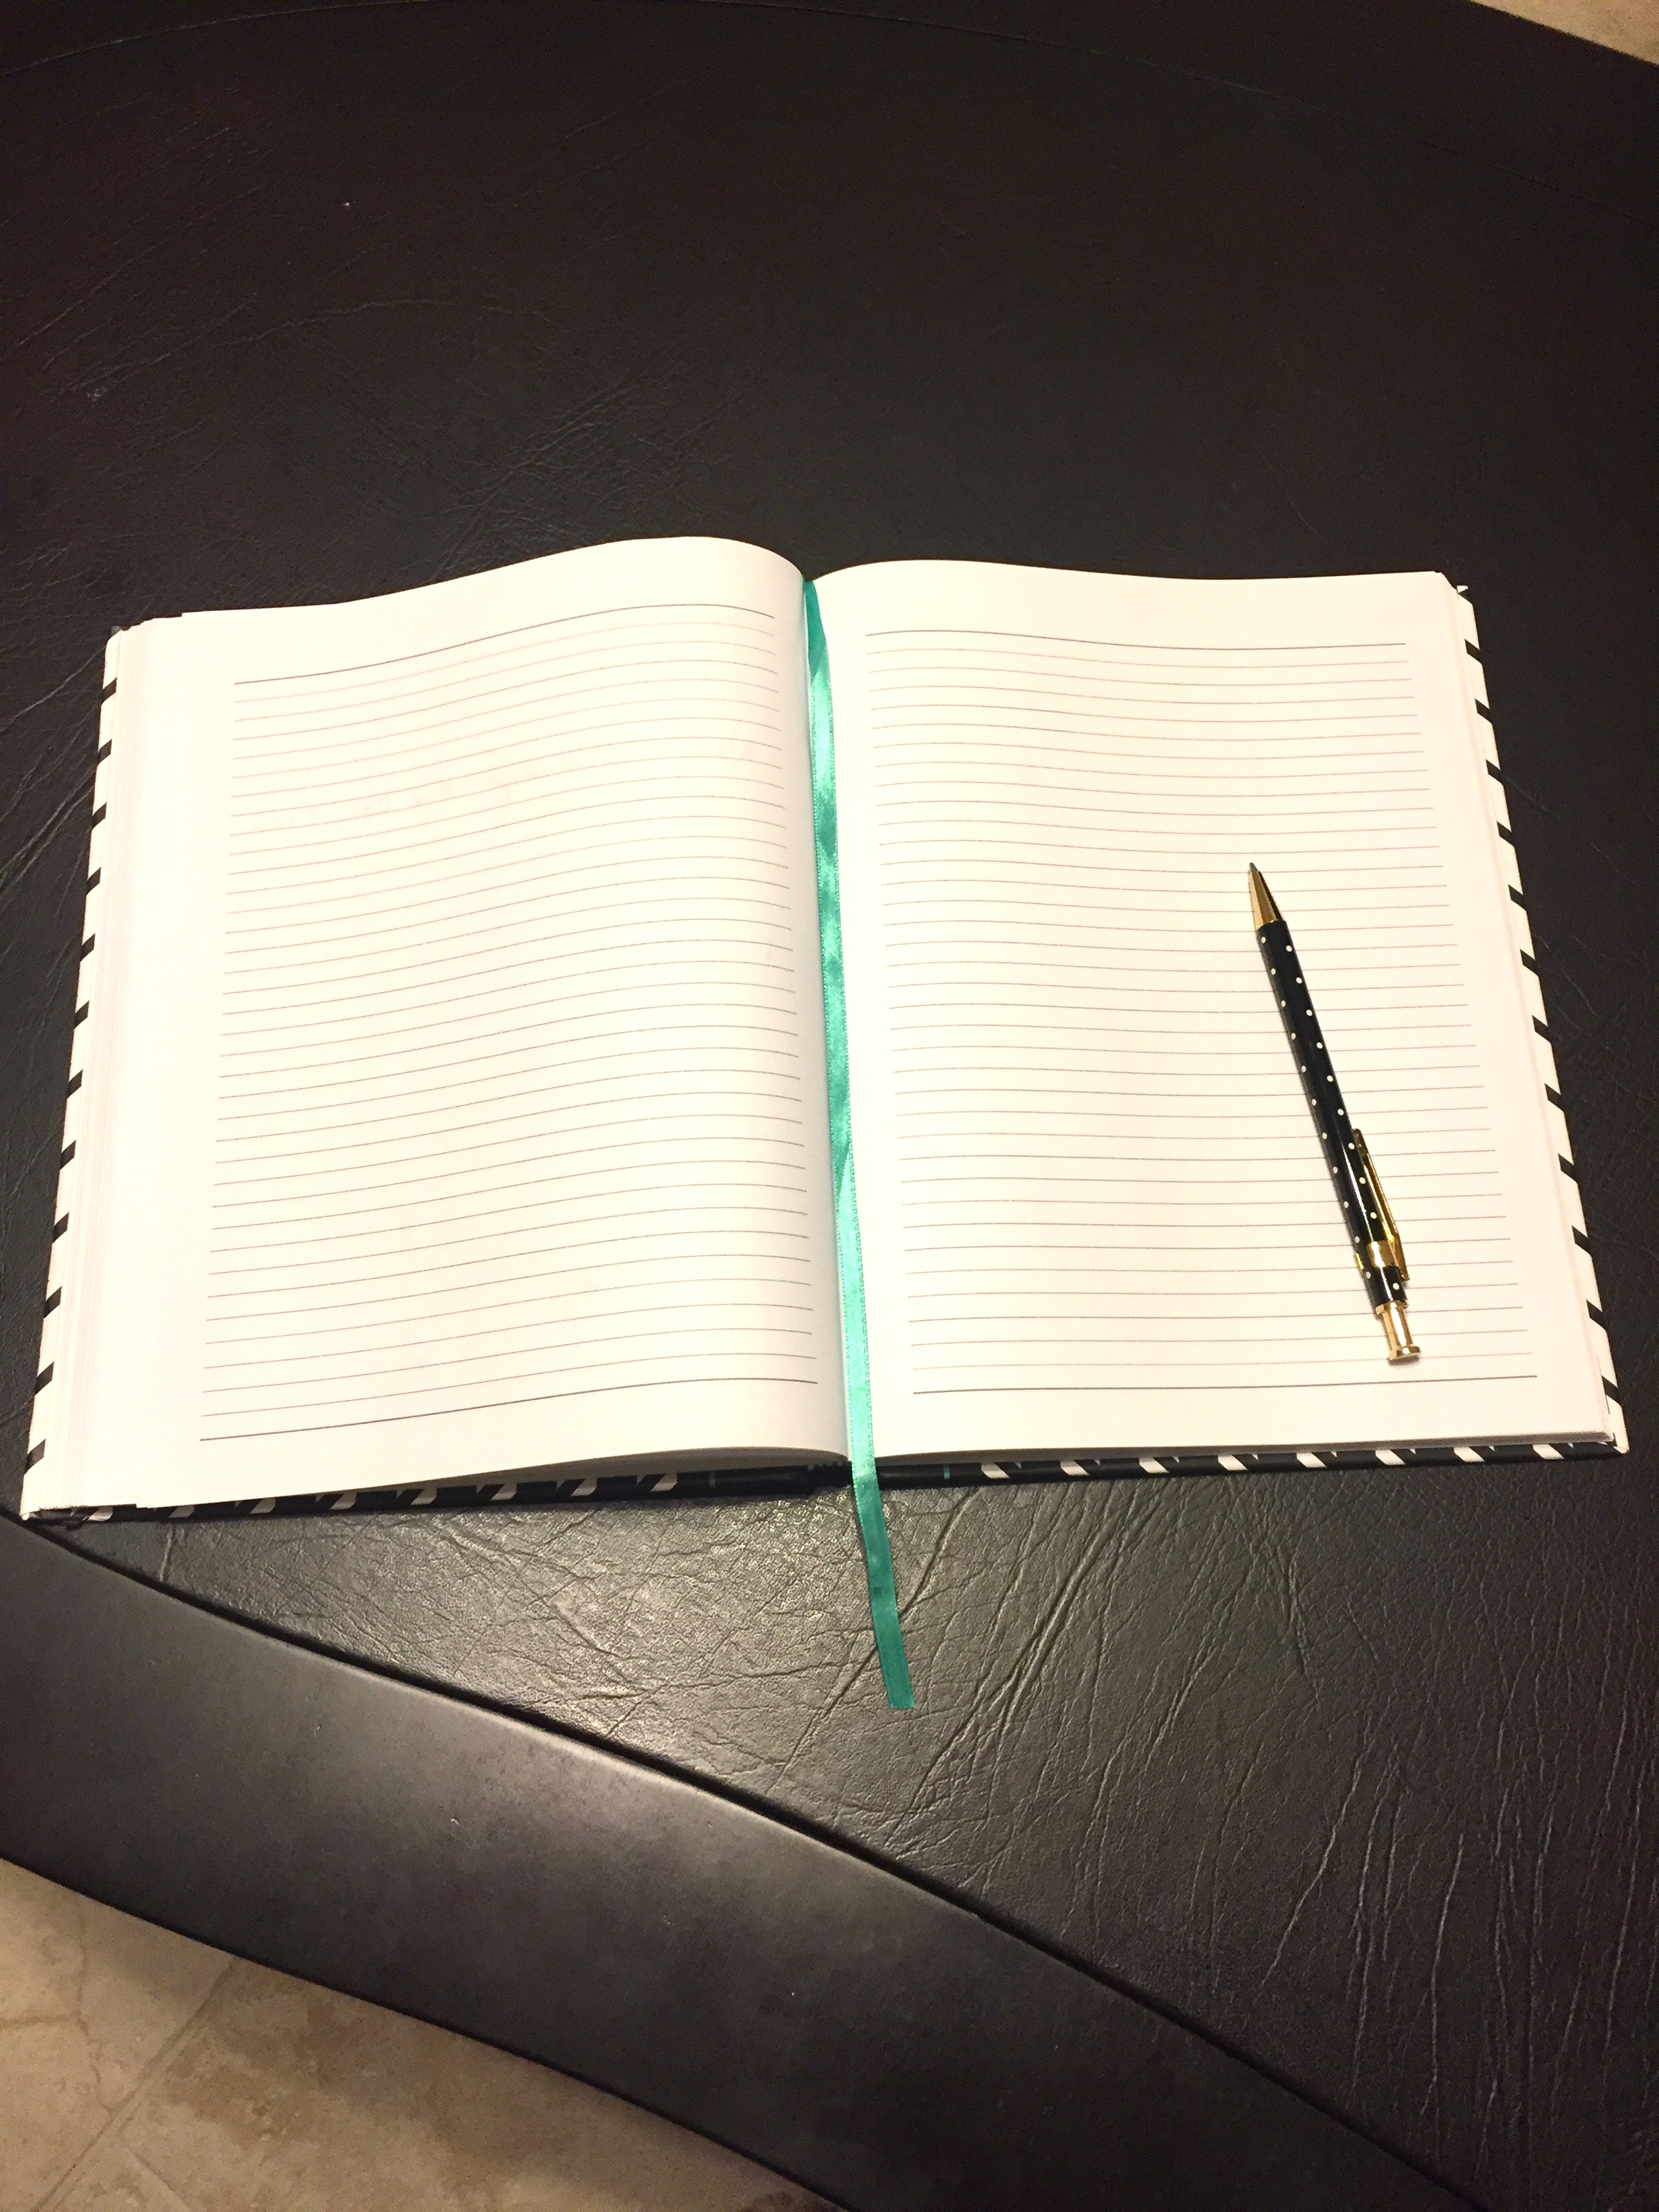 goals, write it down, be open, aha moment, method39, best you